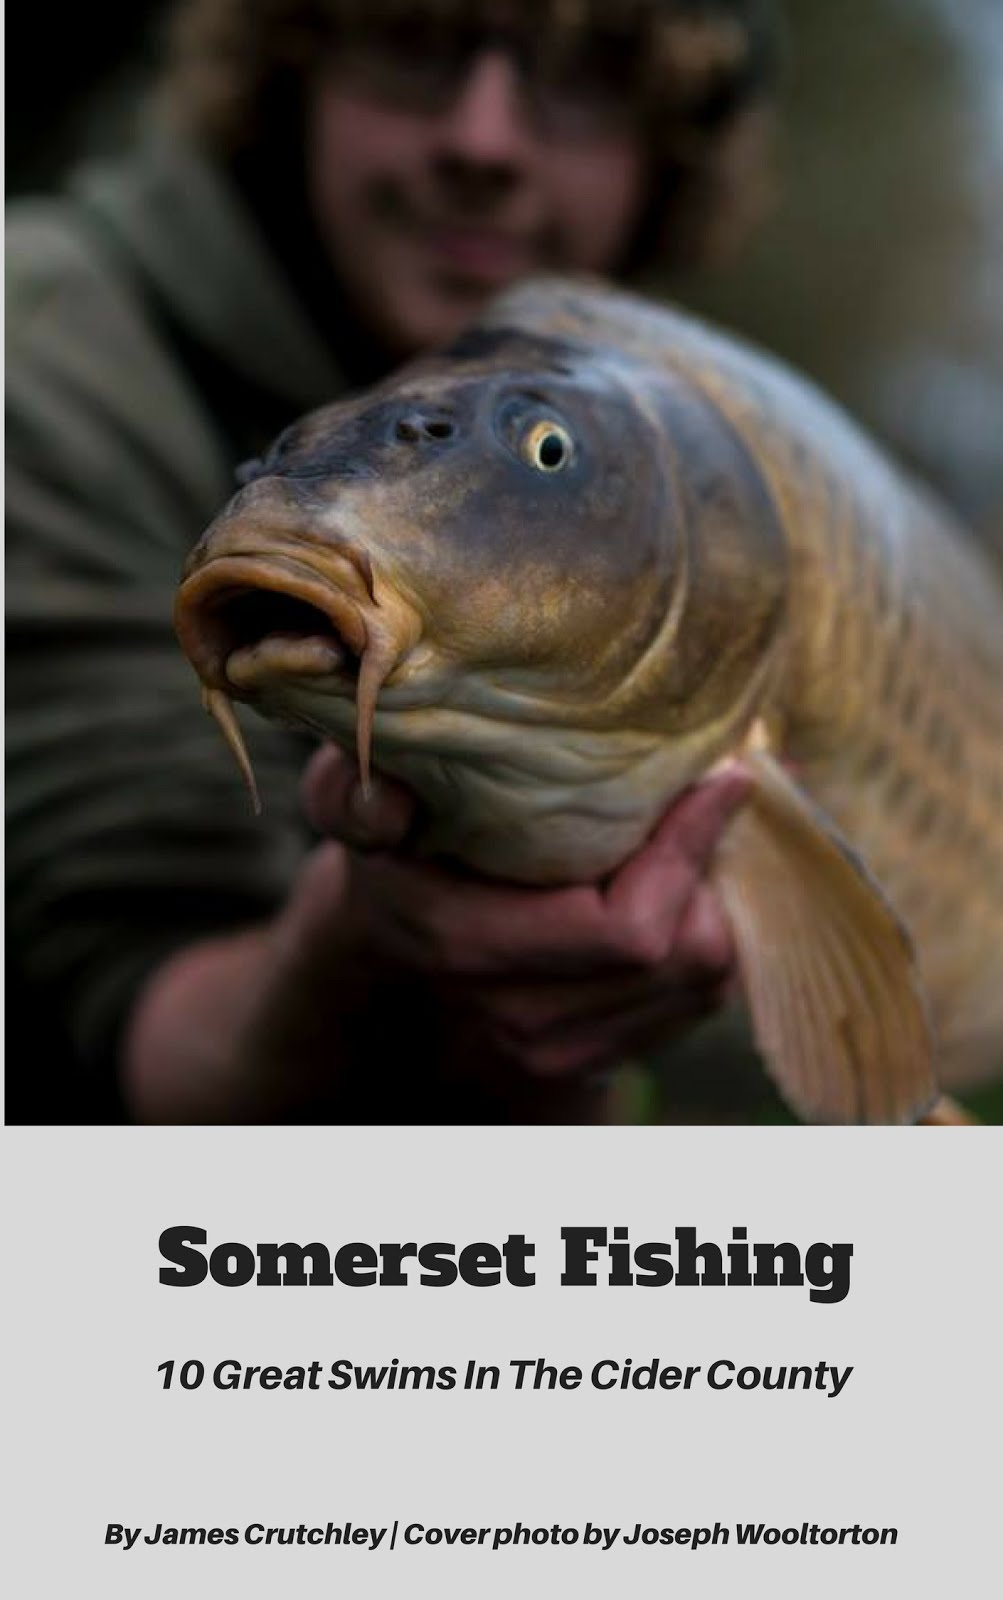 Somerset Fishing